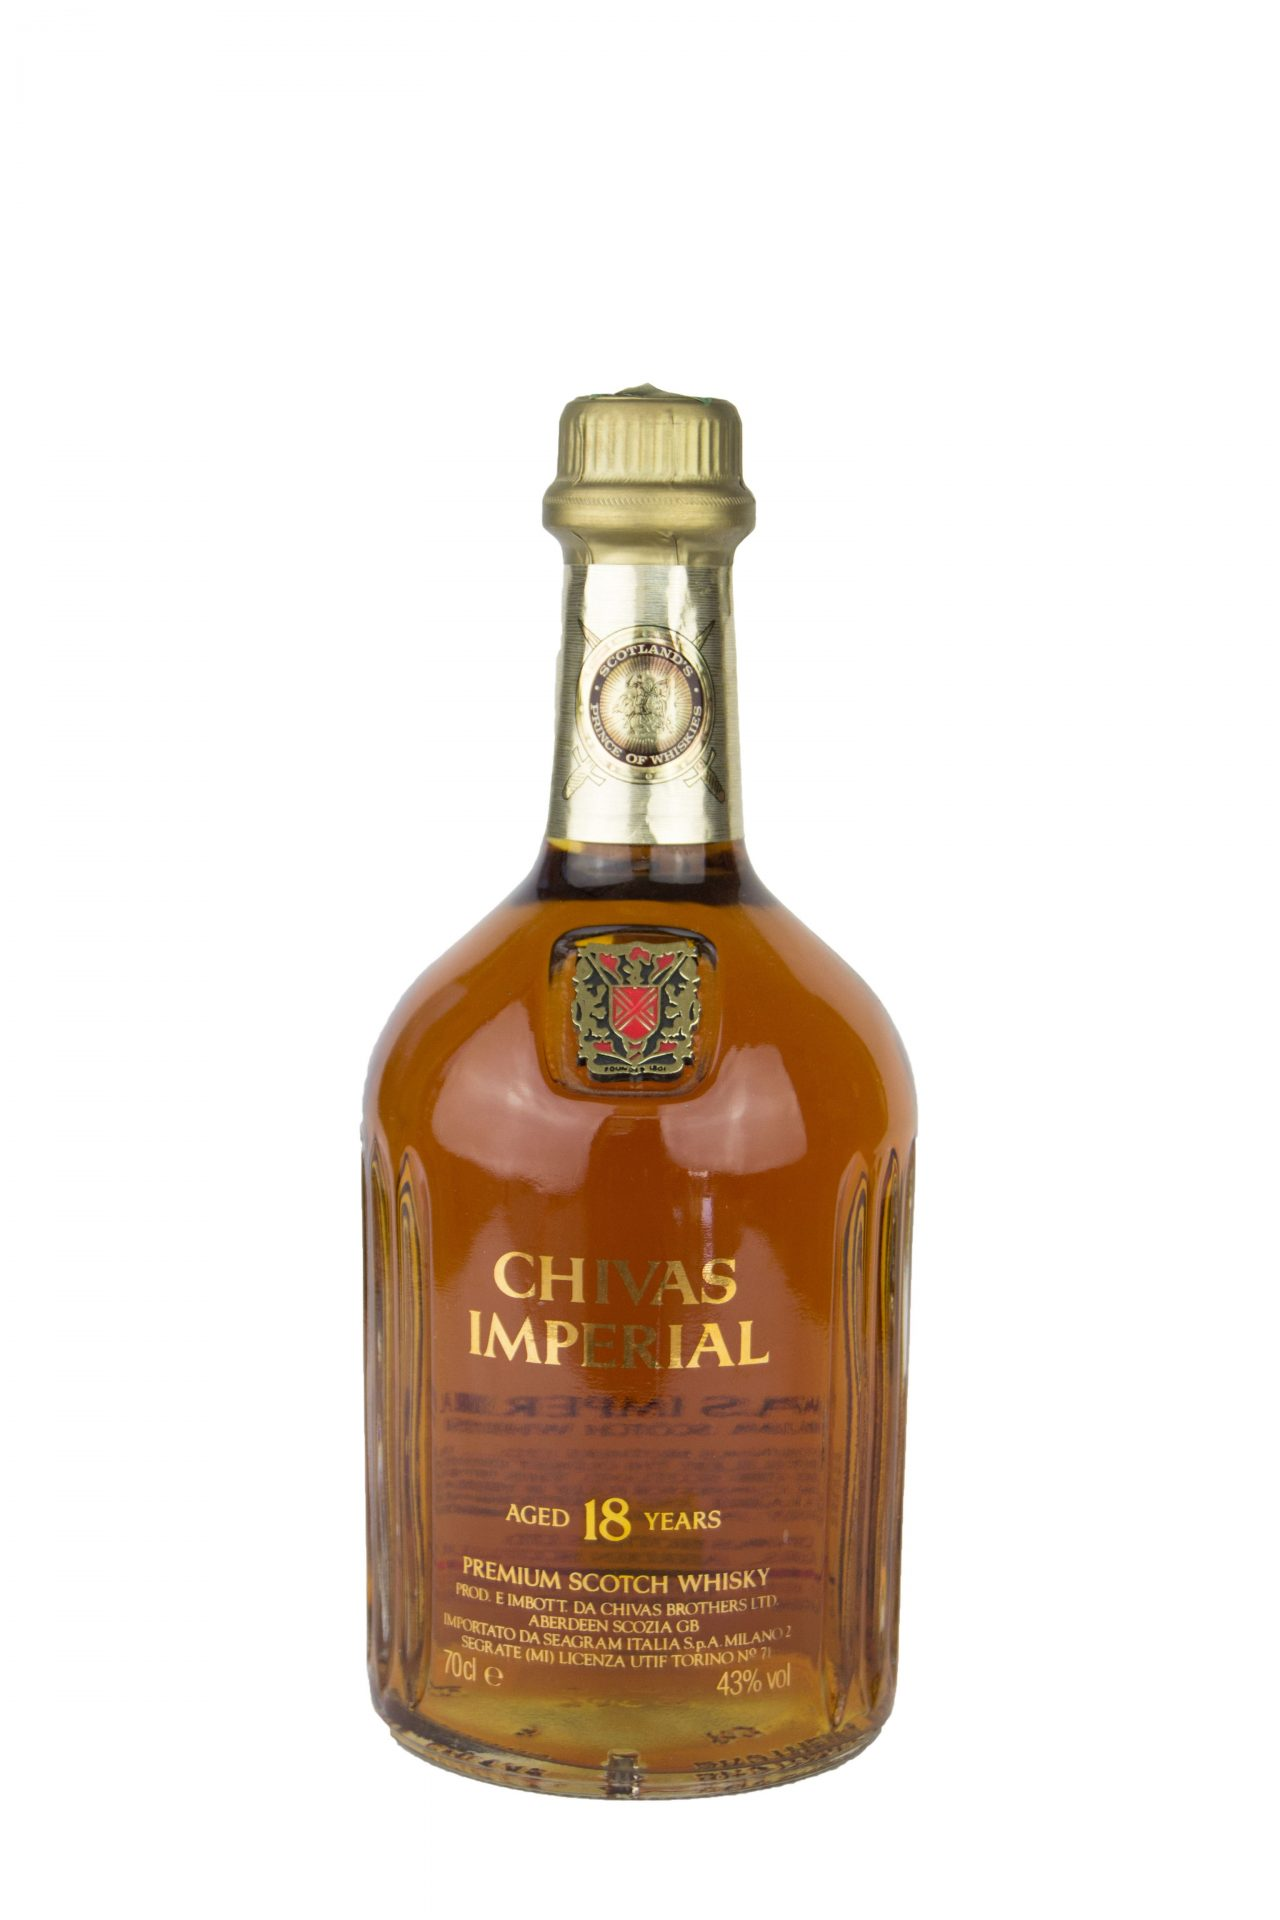 Chivas Imperial – Premium Scotch Whisky 18 Years Old